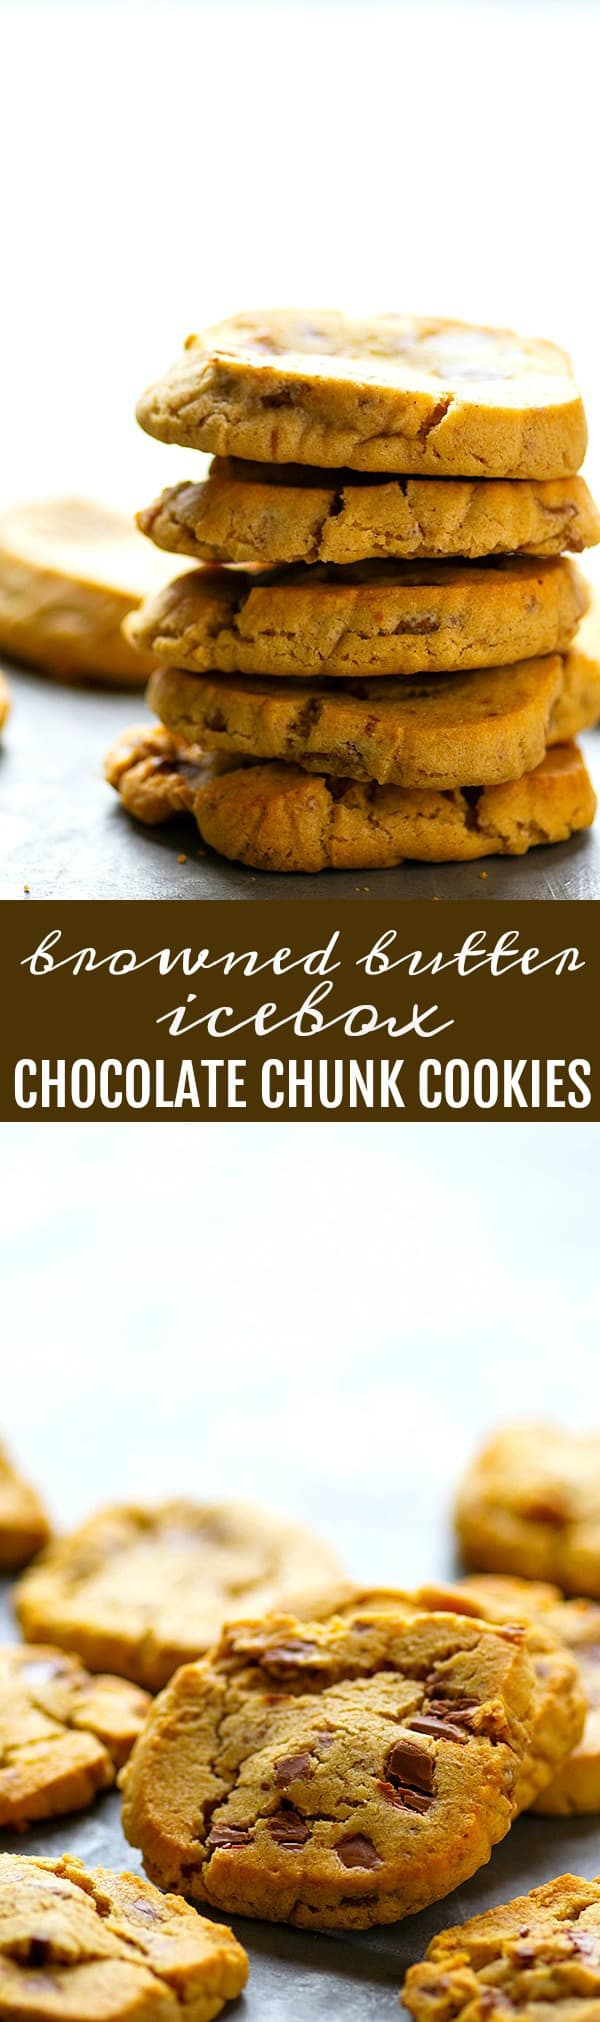 Browned Butter Icebox Chocolate Chunk Cookies - Browned butter and a long dough chilling are the secrets behind what make these browned butter icebox chocolate chunk cookies SO incredibly addicting!